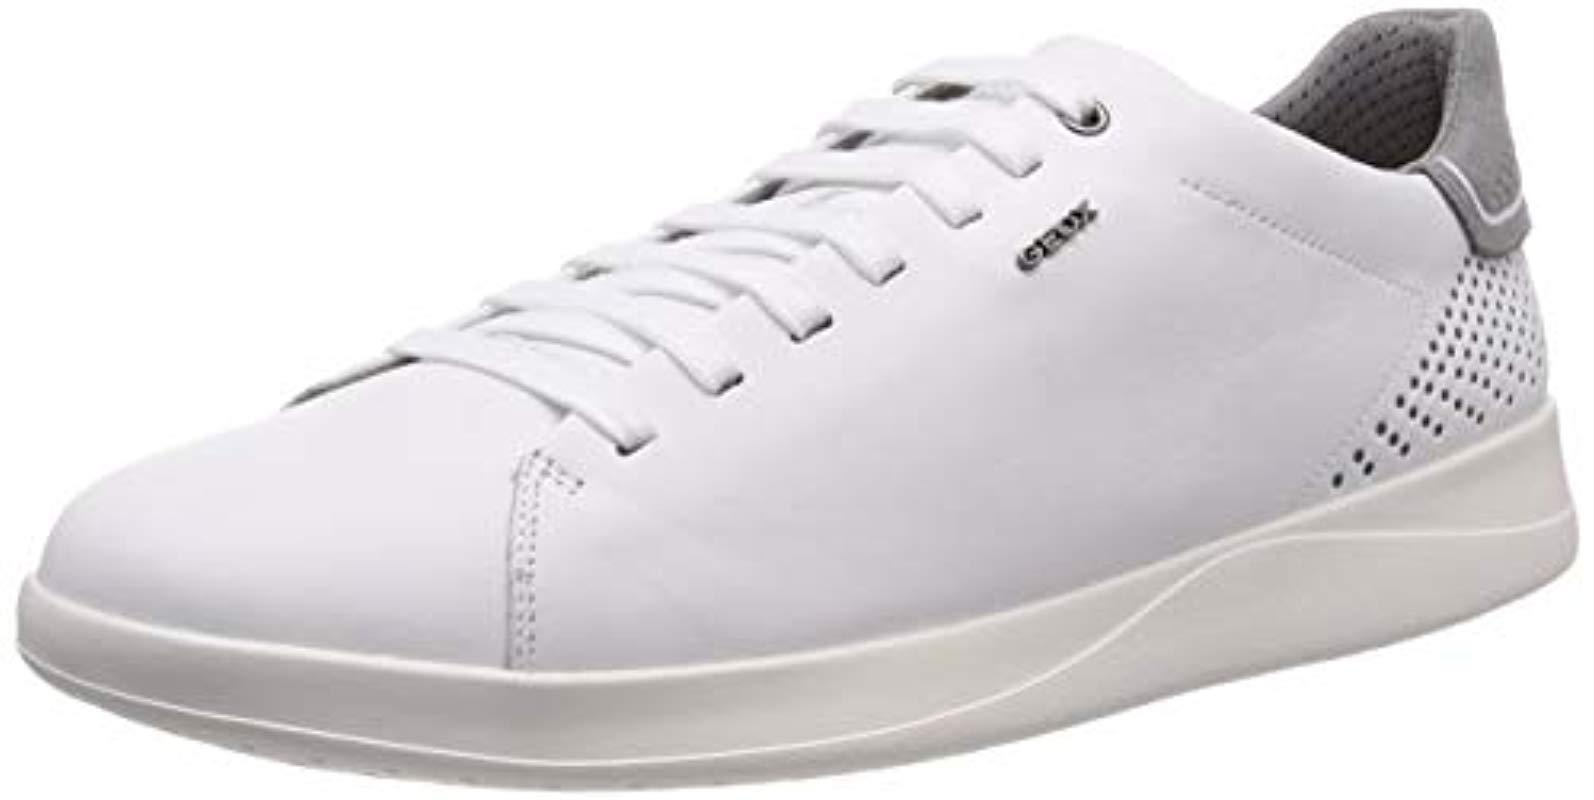 Geox U Kennet B Low top Sneakers in White for Men Save 5